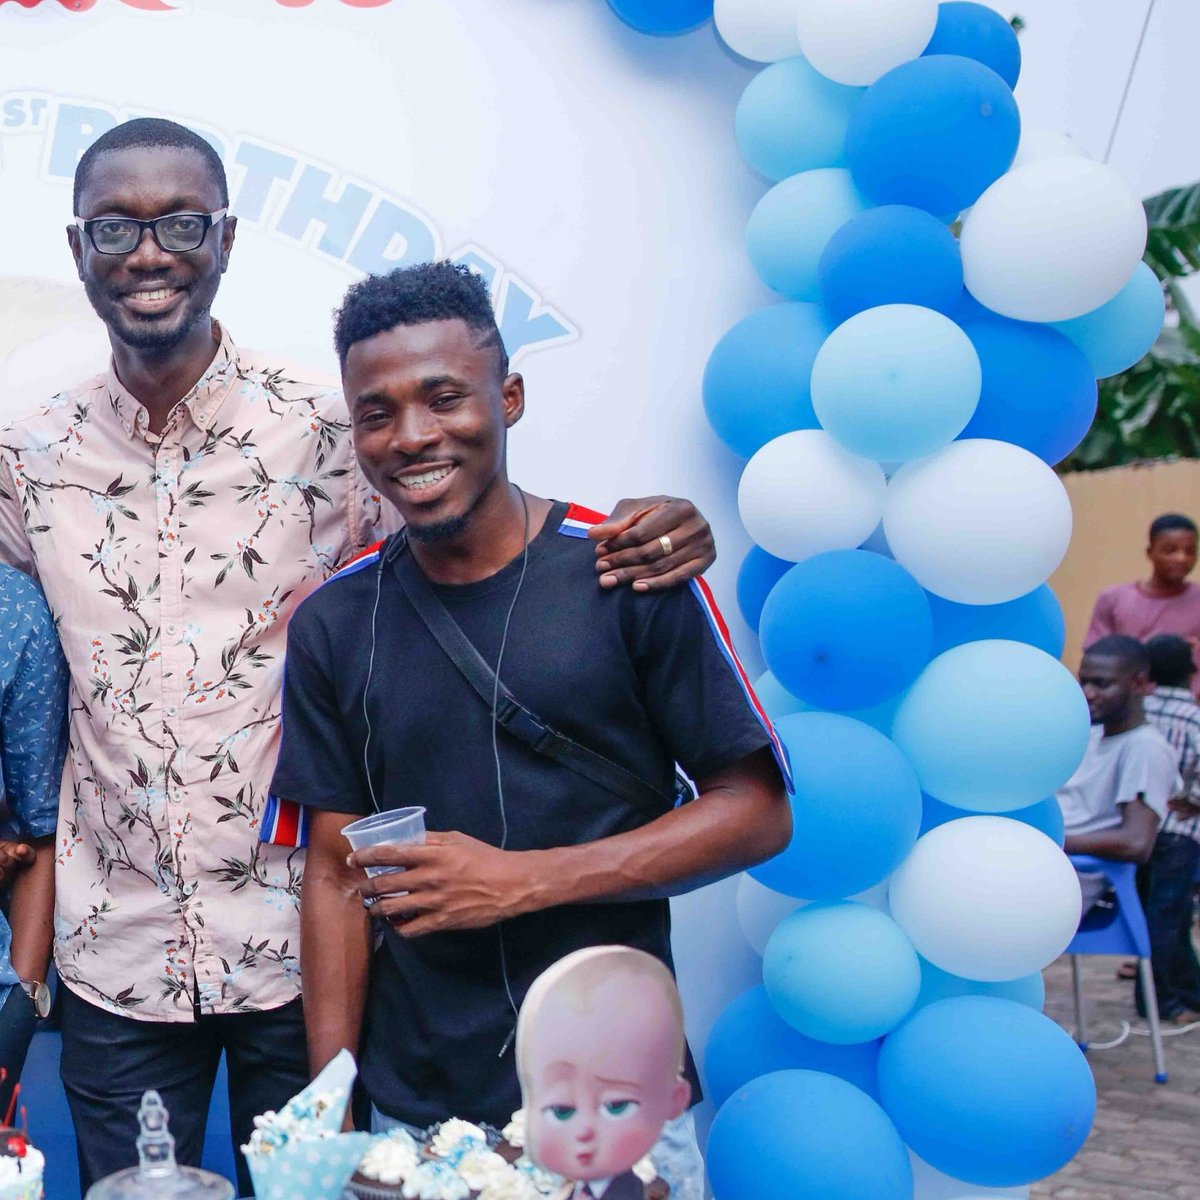 Today was a teary one for us at the office, as we received the sad news of the passing of our young brother and friend Ted. @ameyawtv and the entire team will miss your smile, the funny moments and your total awesomeness 💔😭😭😭😭 #rip